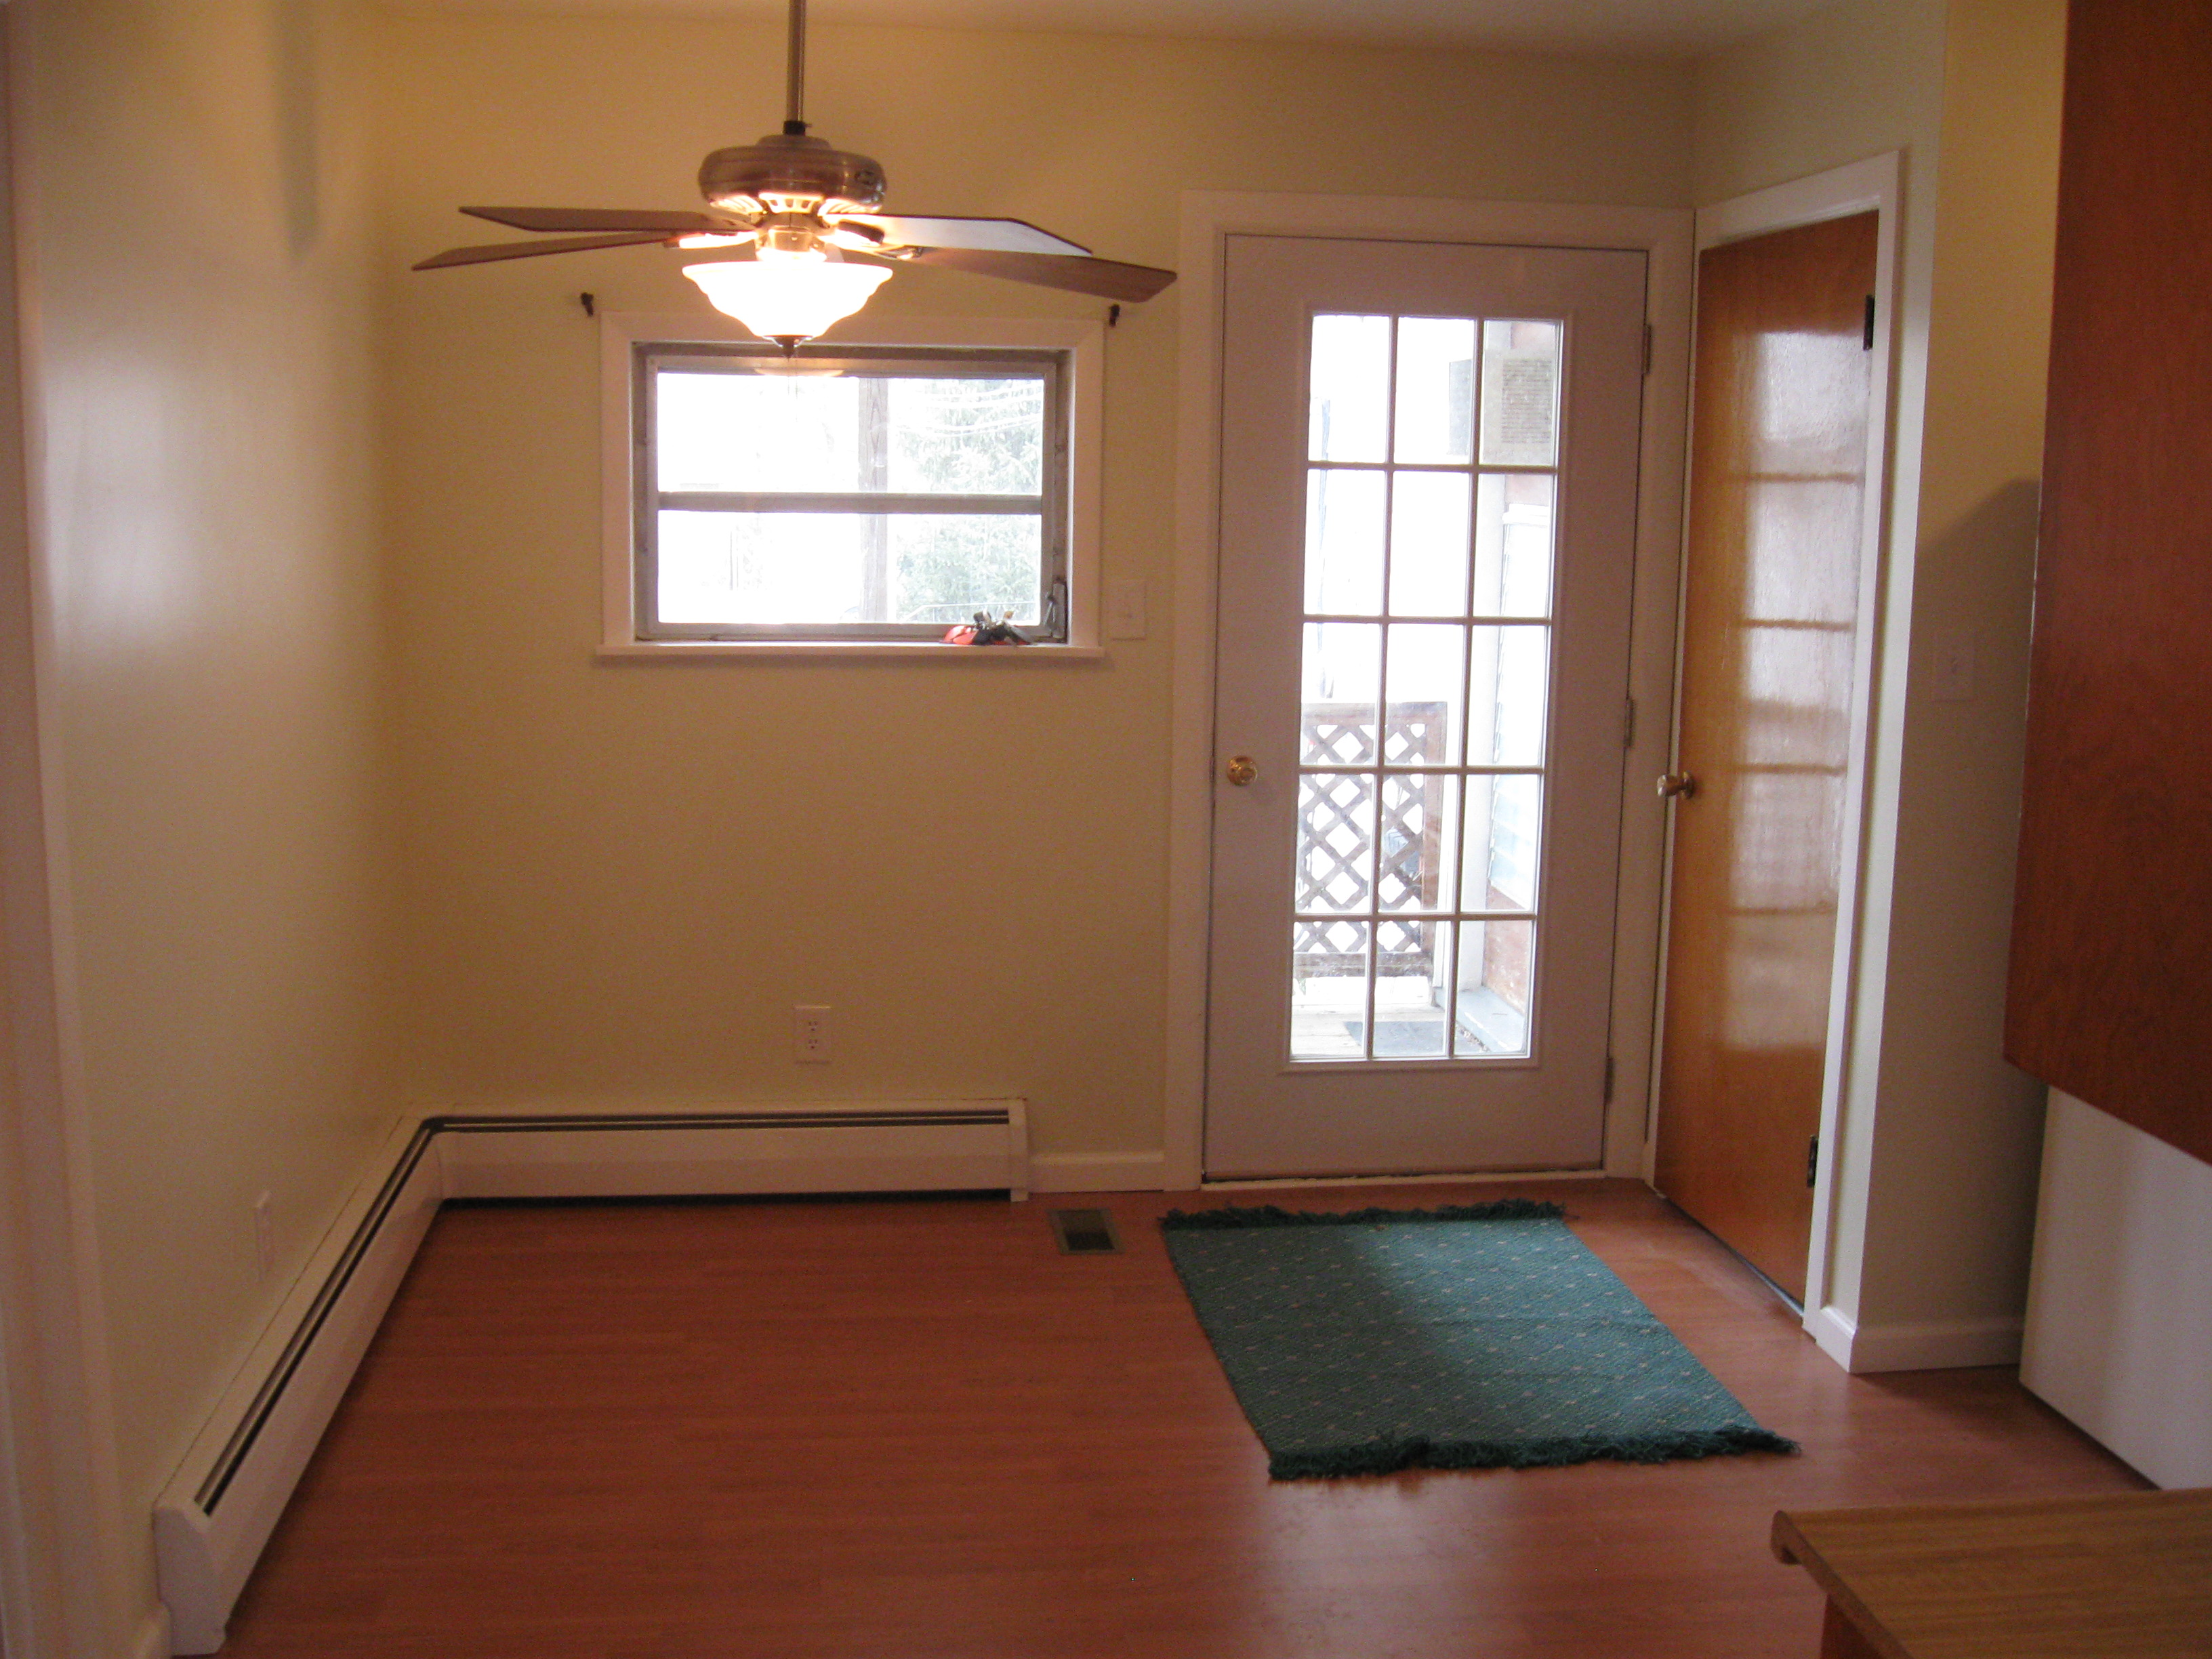 68 n vine st apt 1a westerville oh 3 bedroom apartment inspirit ltd for 3 bedroom apartments in westerville ohio